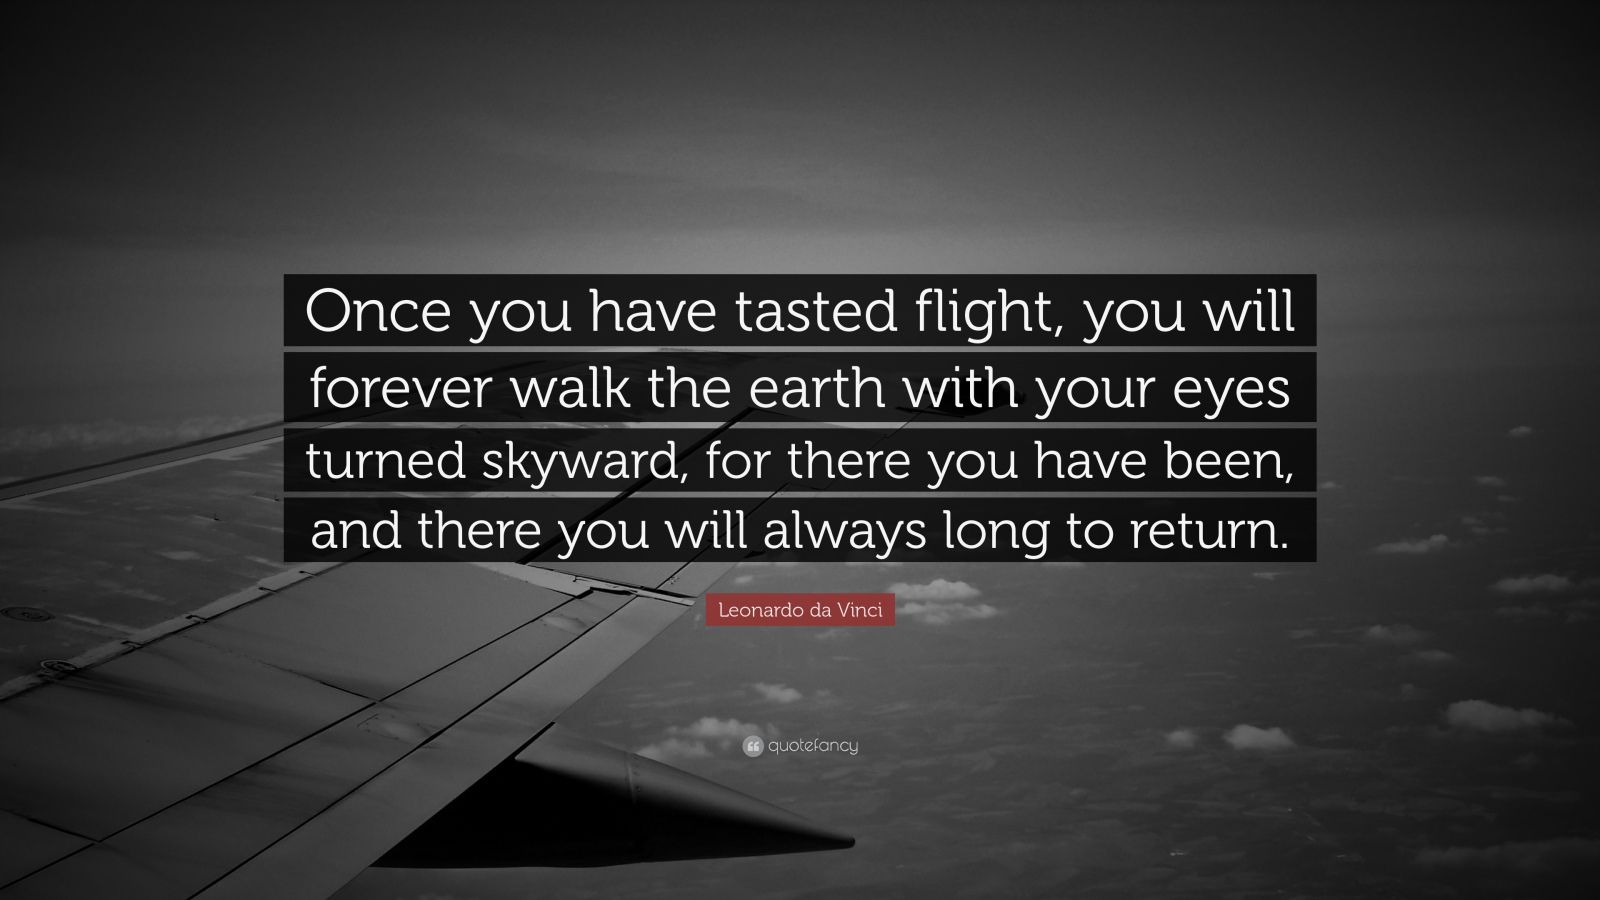 """Leonardo da Vinci Quote: """"Once you have tasted flight, you will forever walk the earth with your eyes turned skyward, for there you have been, and there you will always long to return."""""""